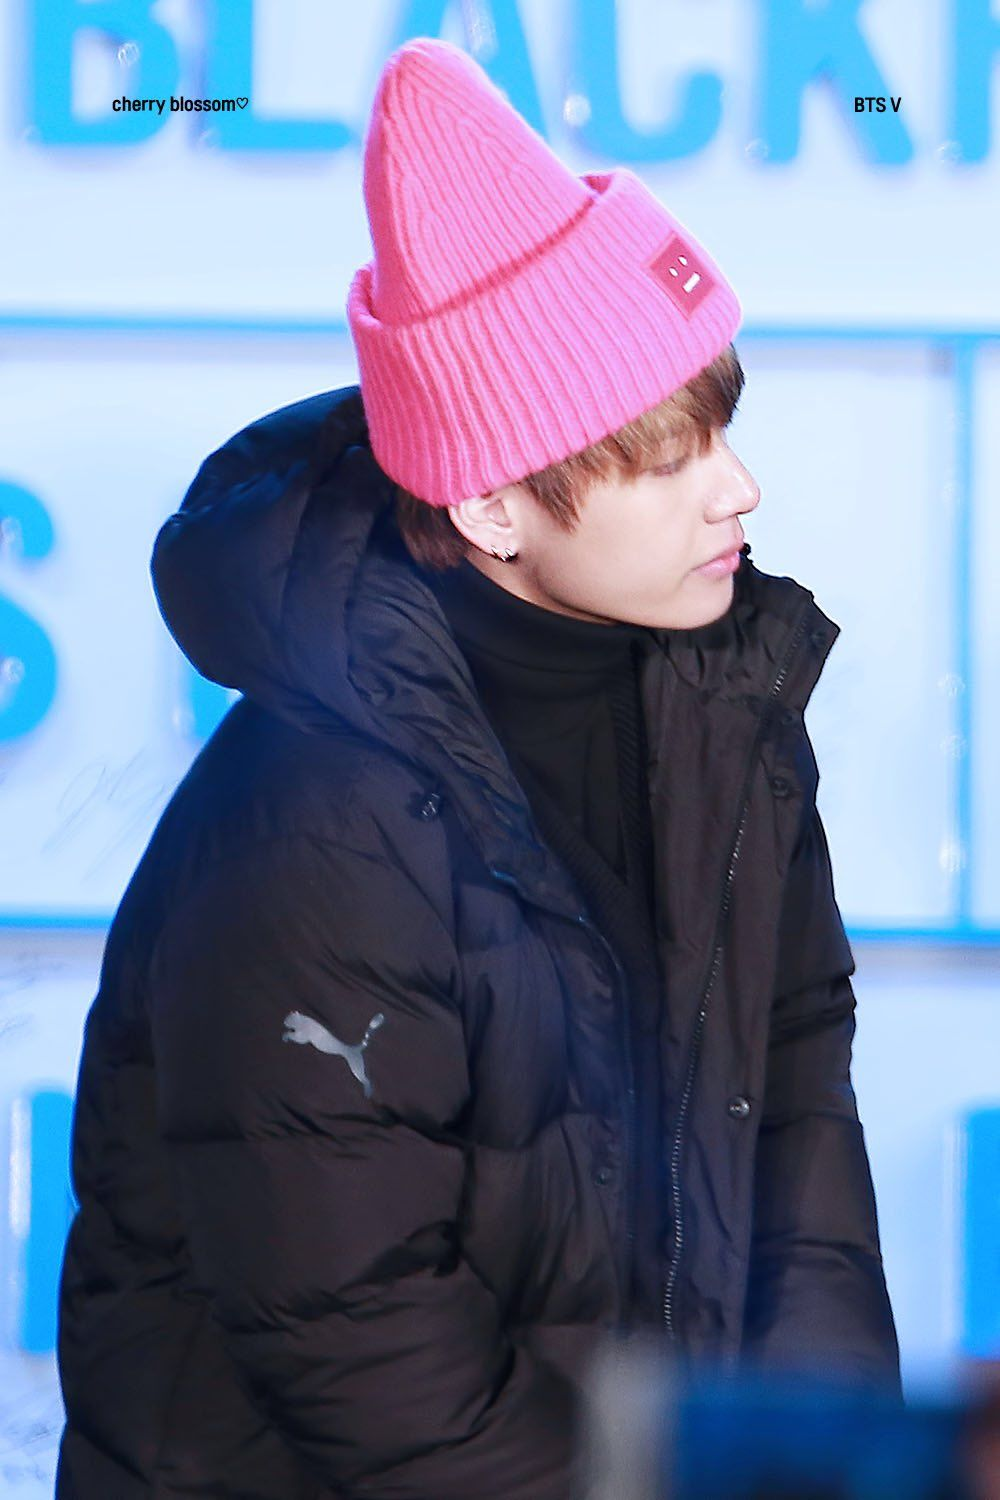 7 Photos of BTS s V In His New Beanie Proving Real Men Wear Pink ... af494e0fb2ac